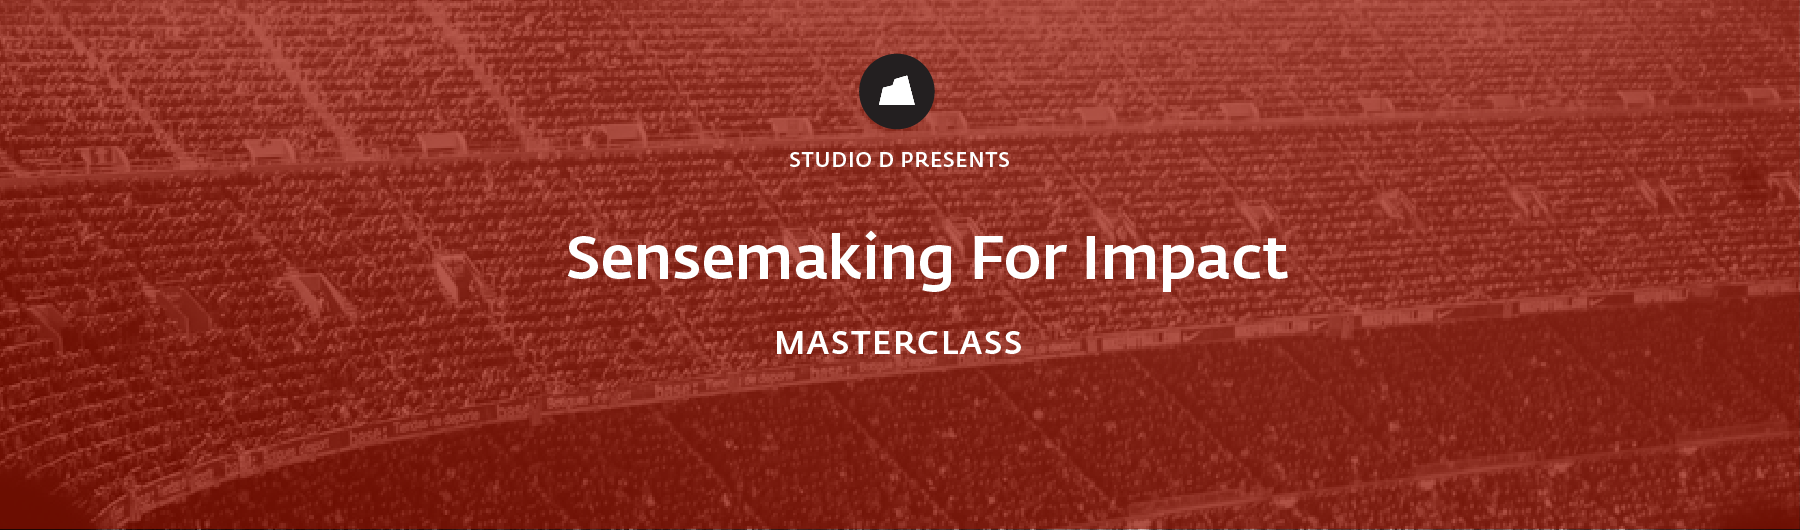 Sensemaking For Impact Masterclass, 2 April 2020, New York City